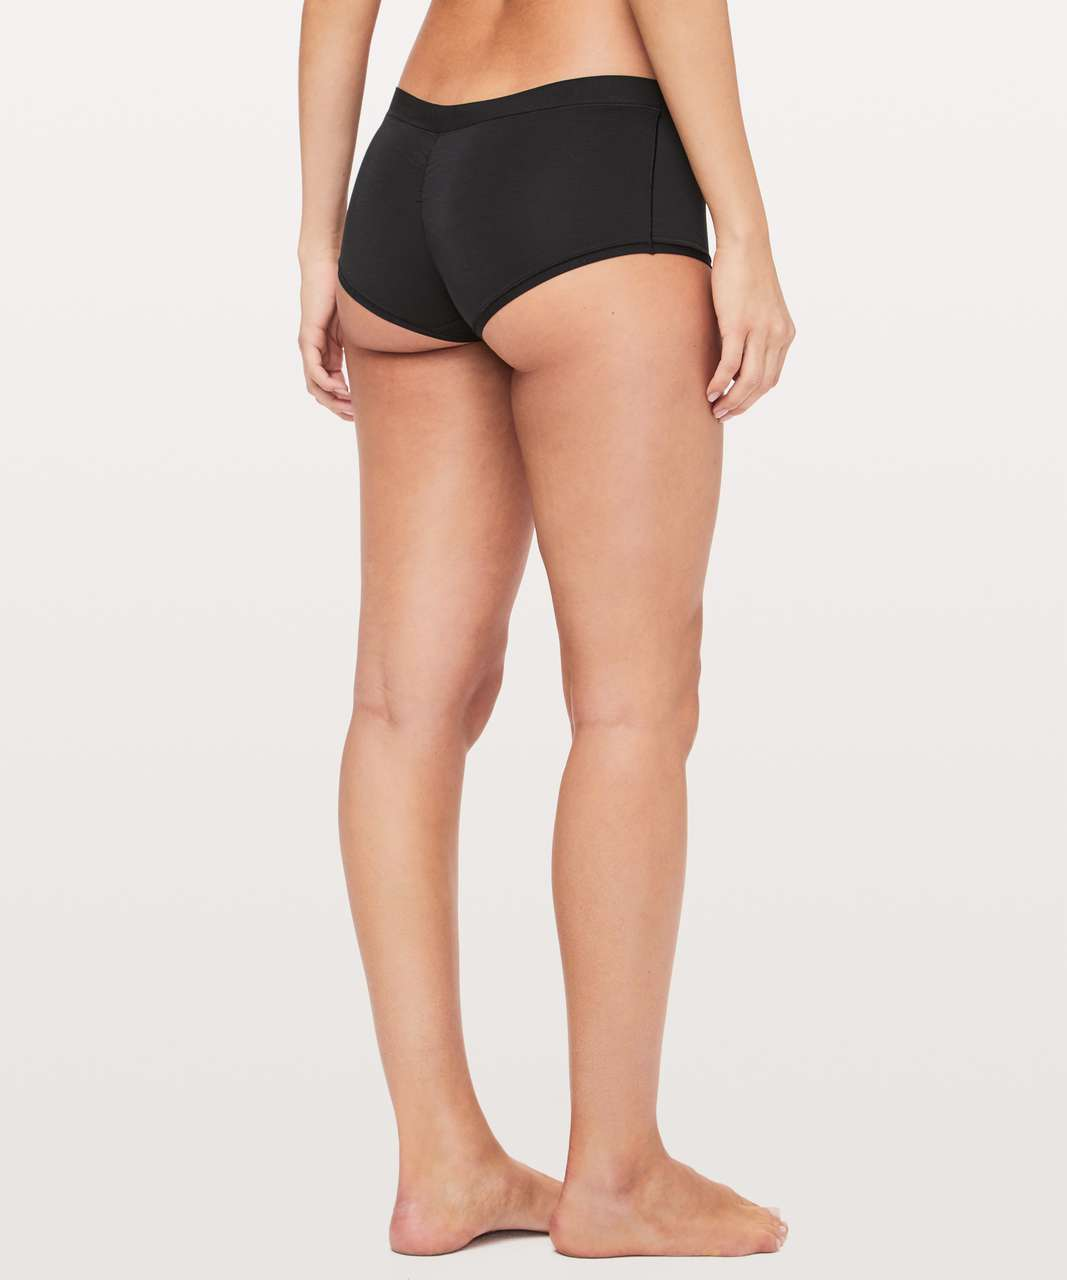 57c112c1c Lululemon Simply There Boyshort - Black - lulu fanatics